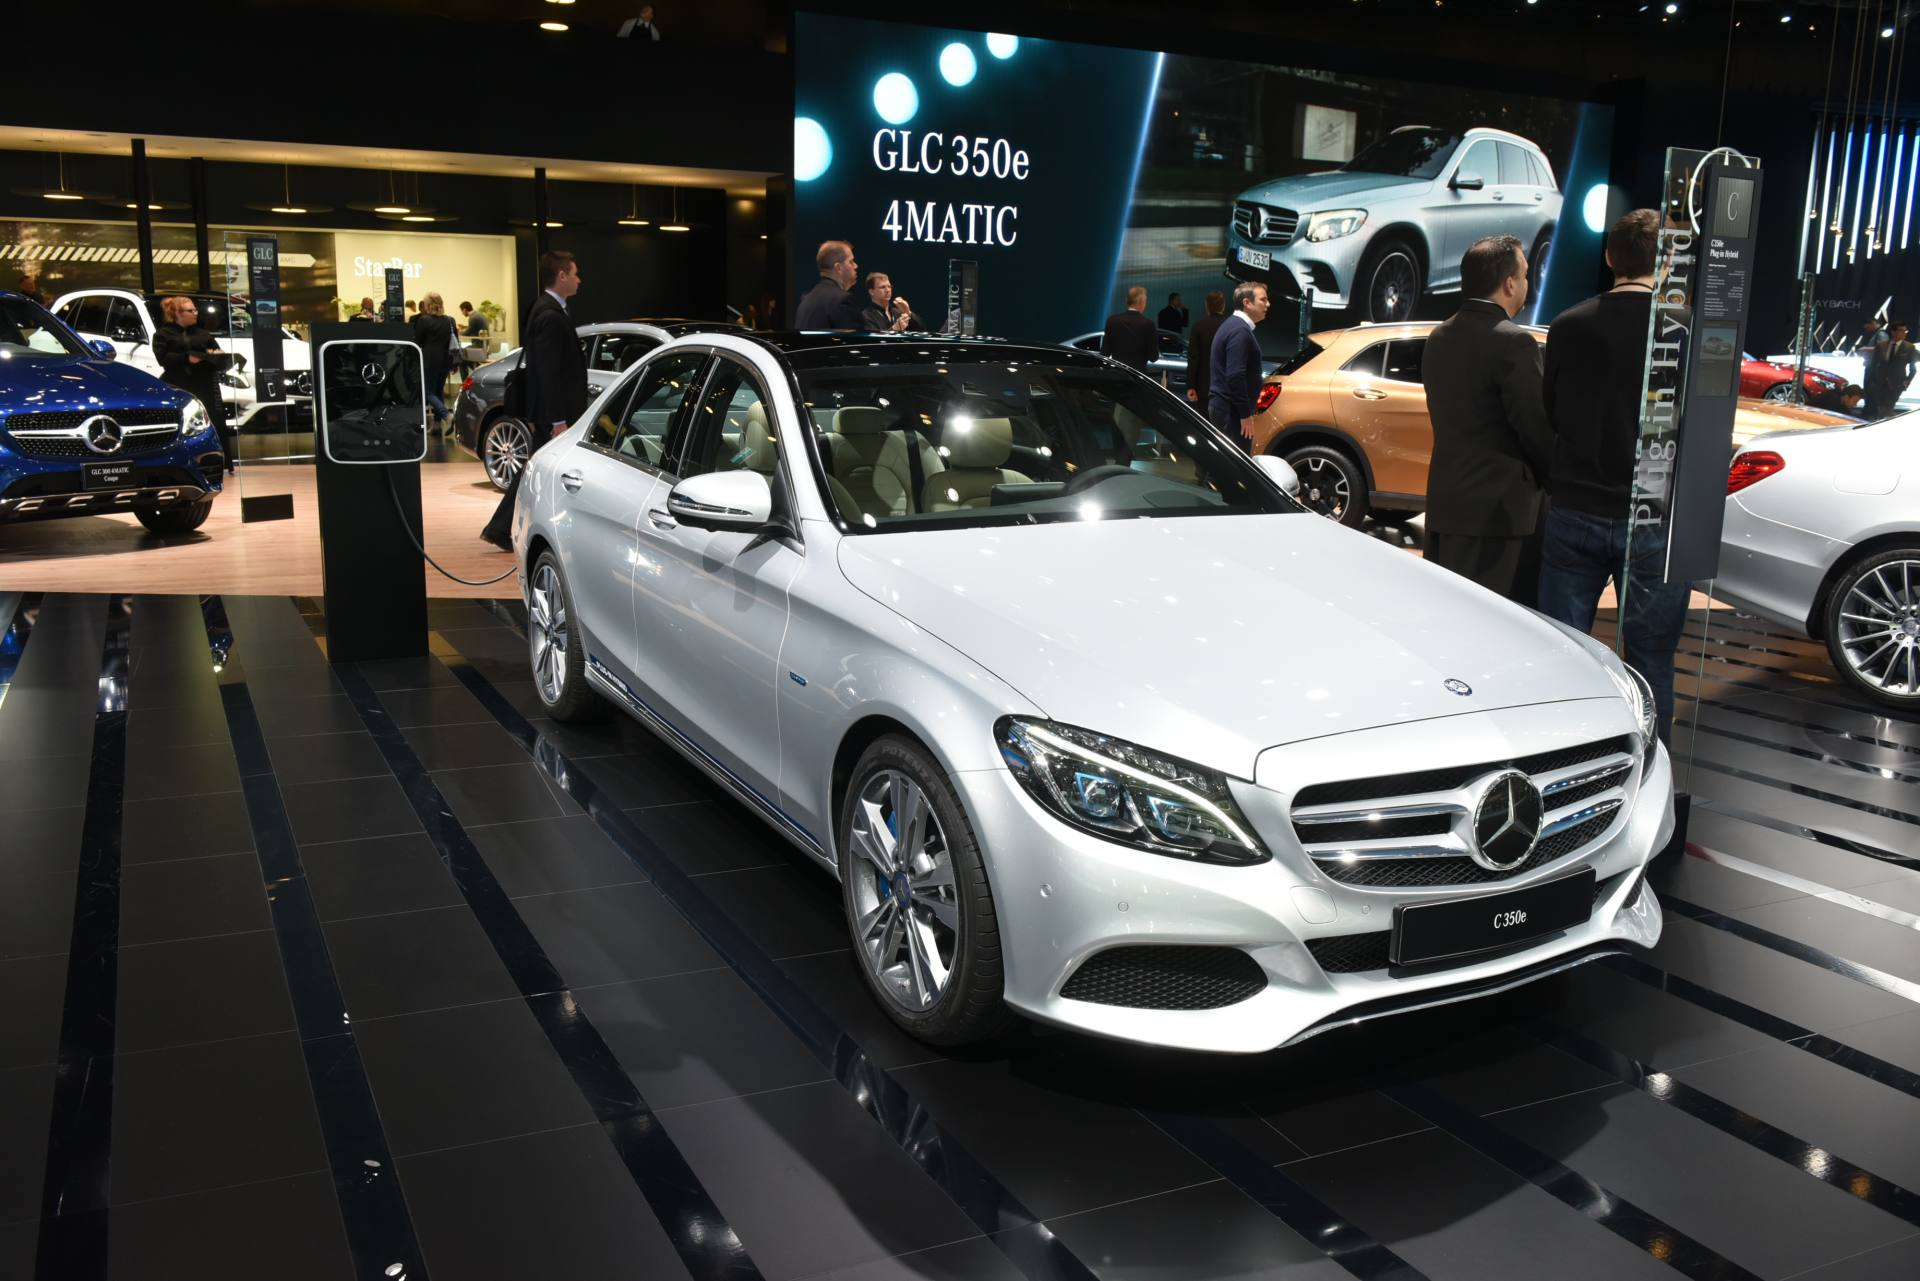 Lo stand di Mercedes-Benz all'Auto Show di Detroit